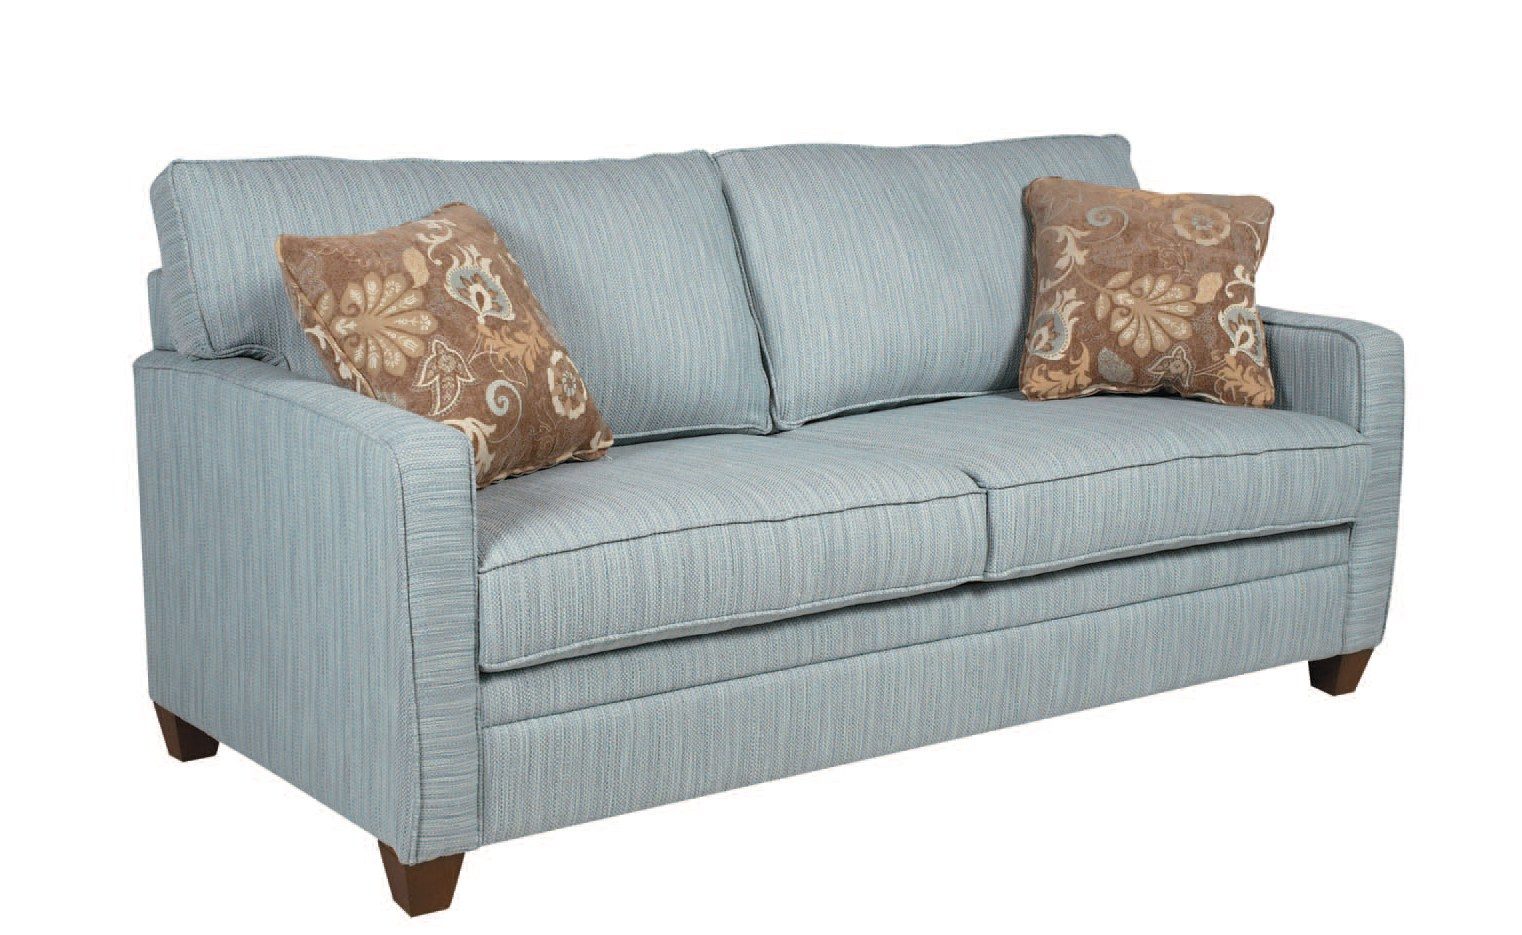 queen sleeper sofa sectionals and chair company jobs 951 is inside out st lucia